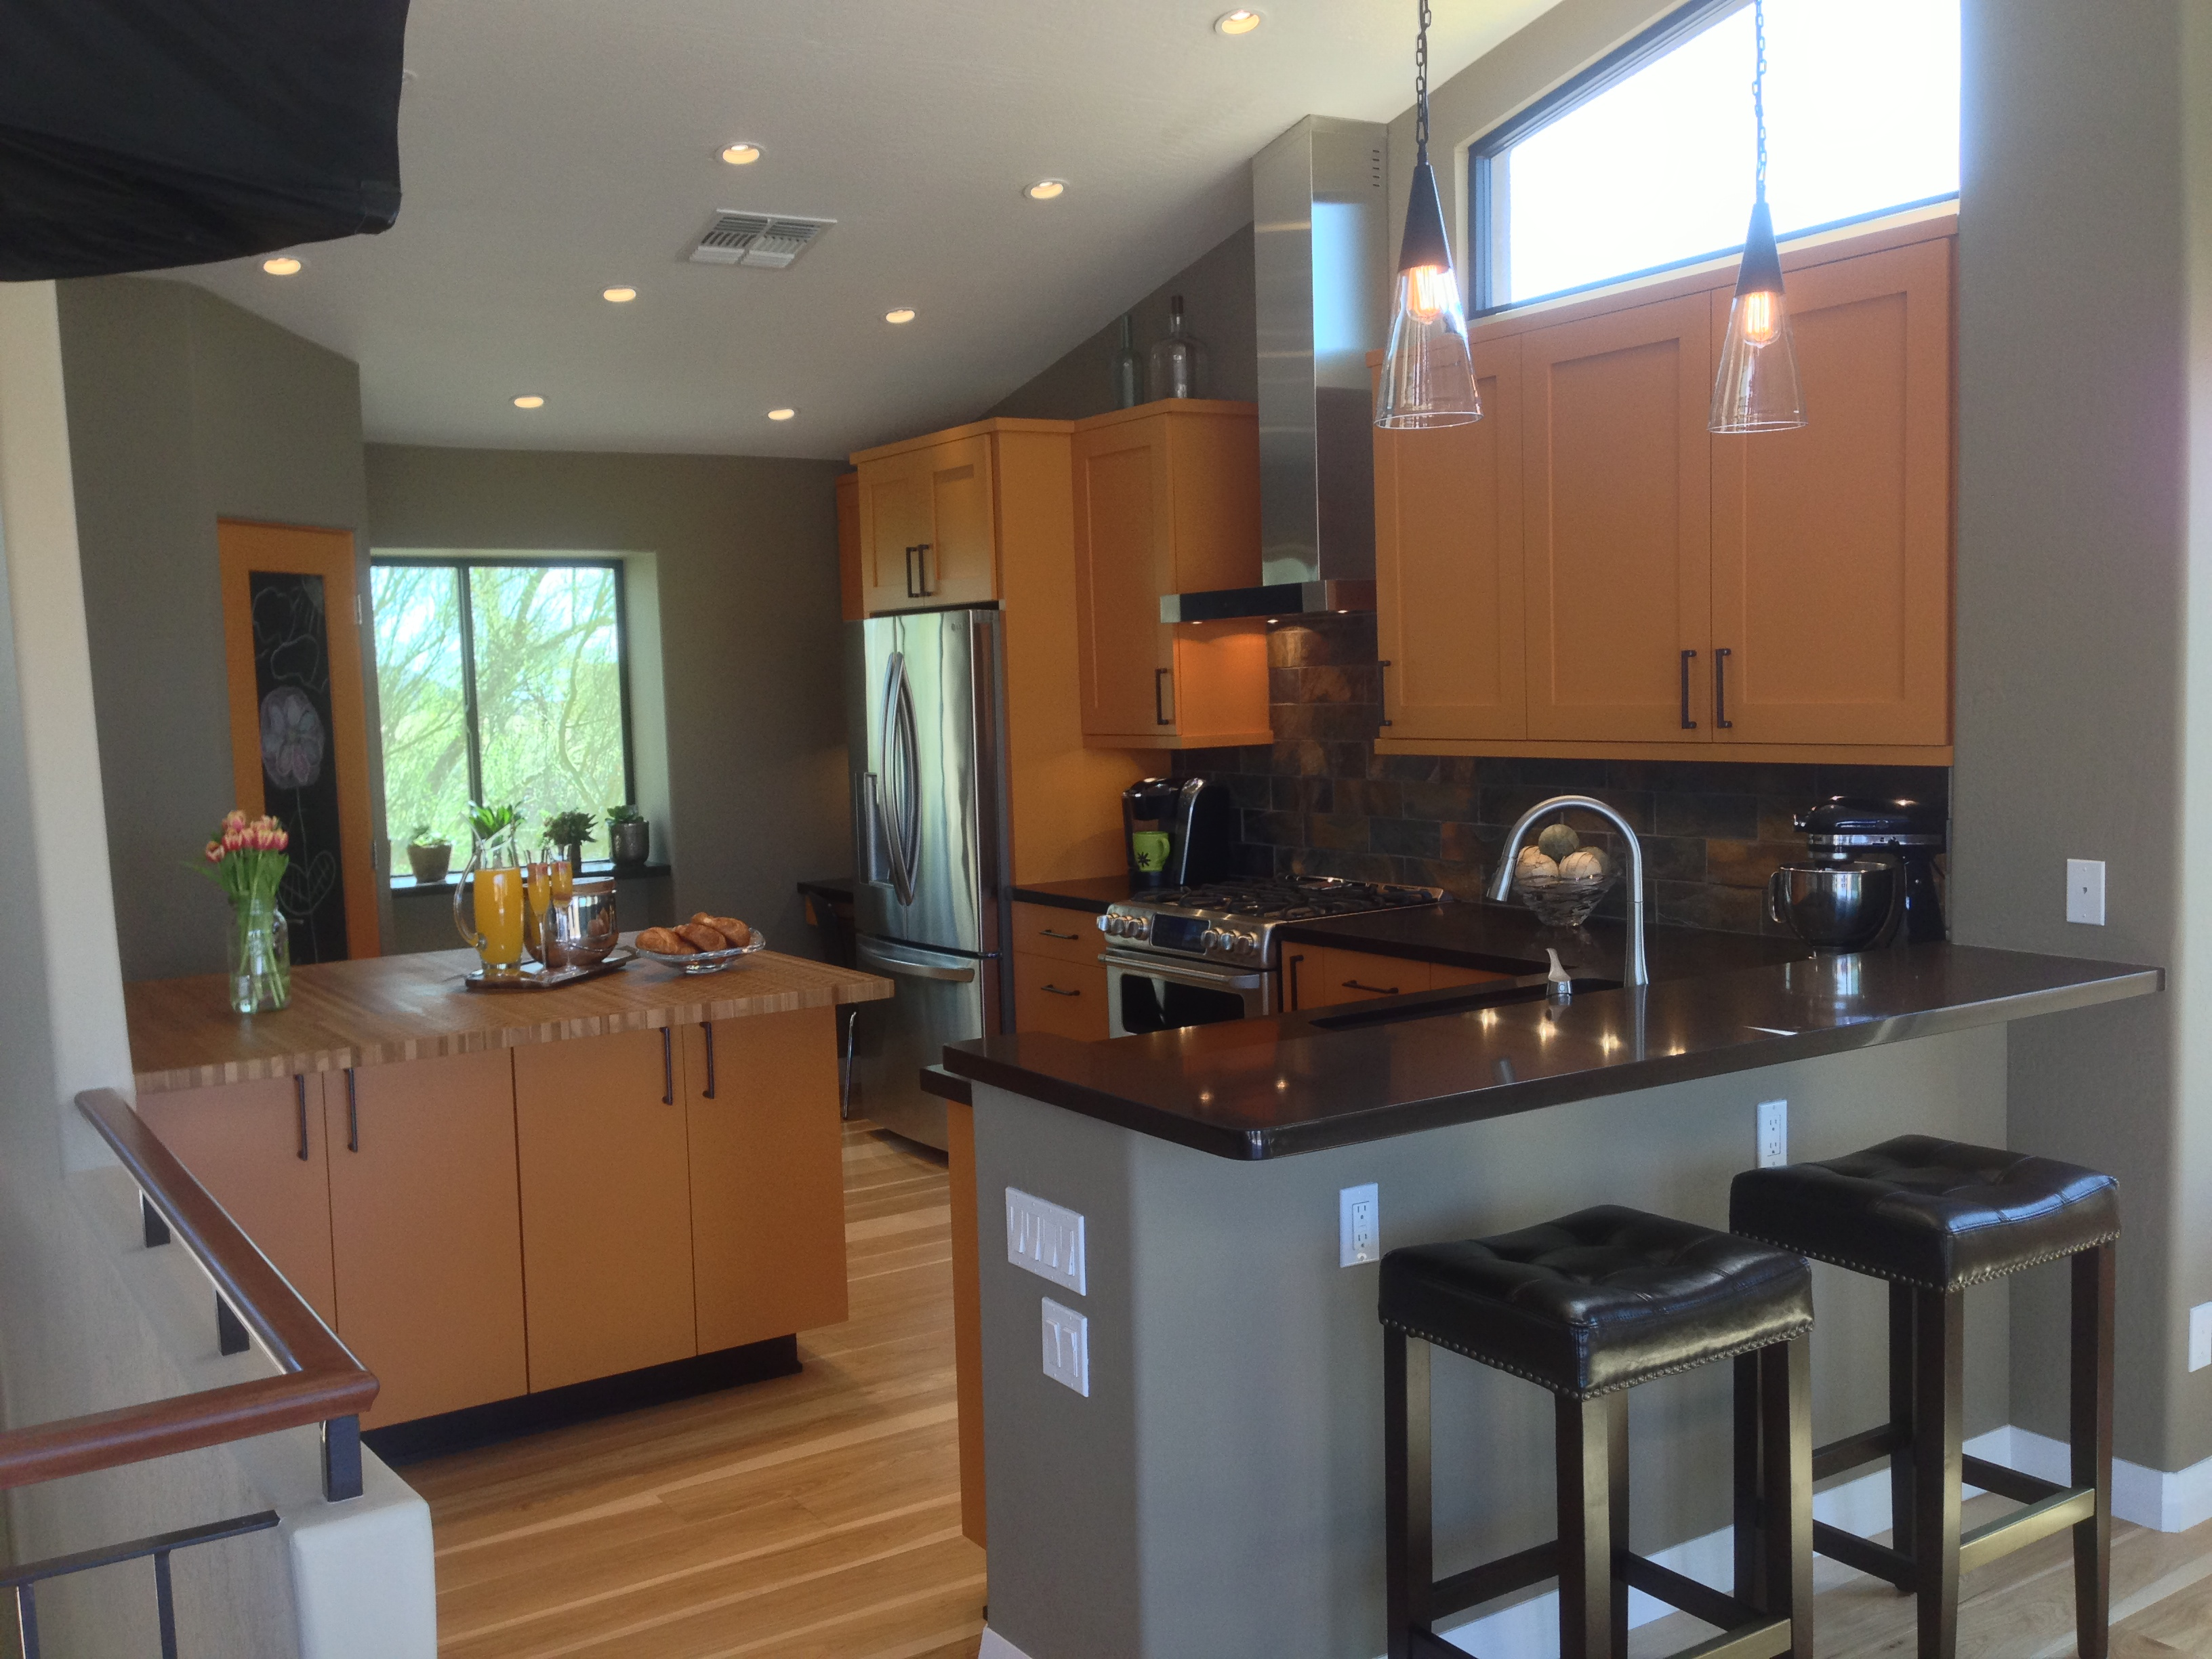 Granite Countertops for Kitchen Remodeling in Scottsdale on Black Countertops  id=92644